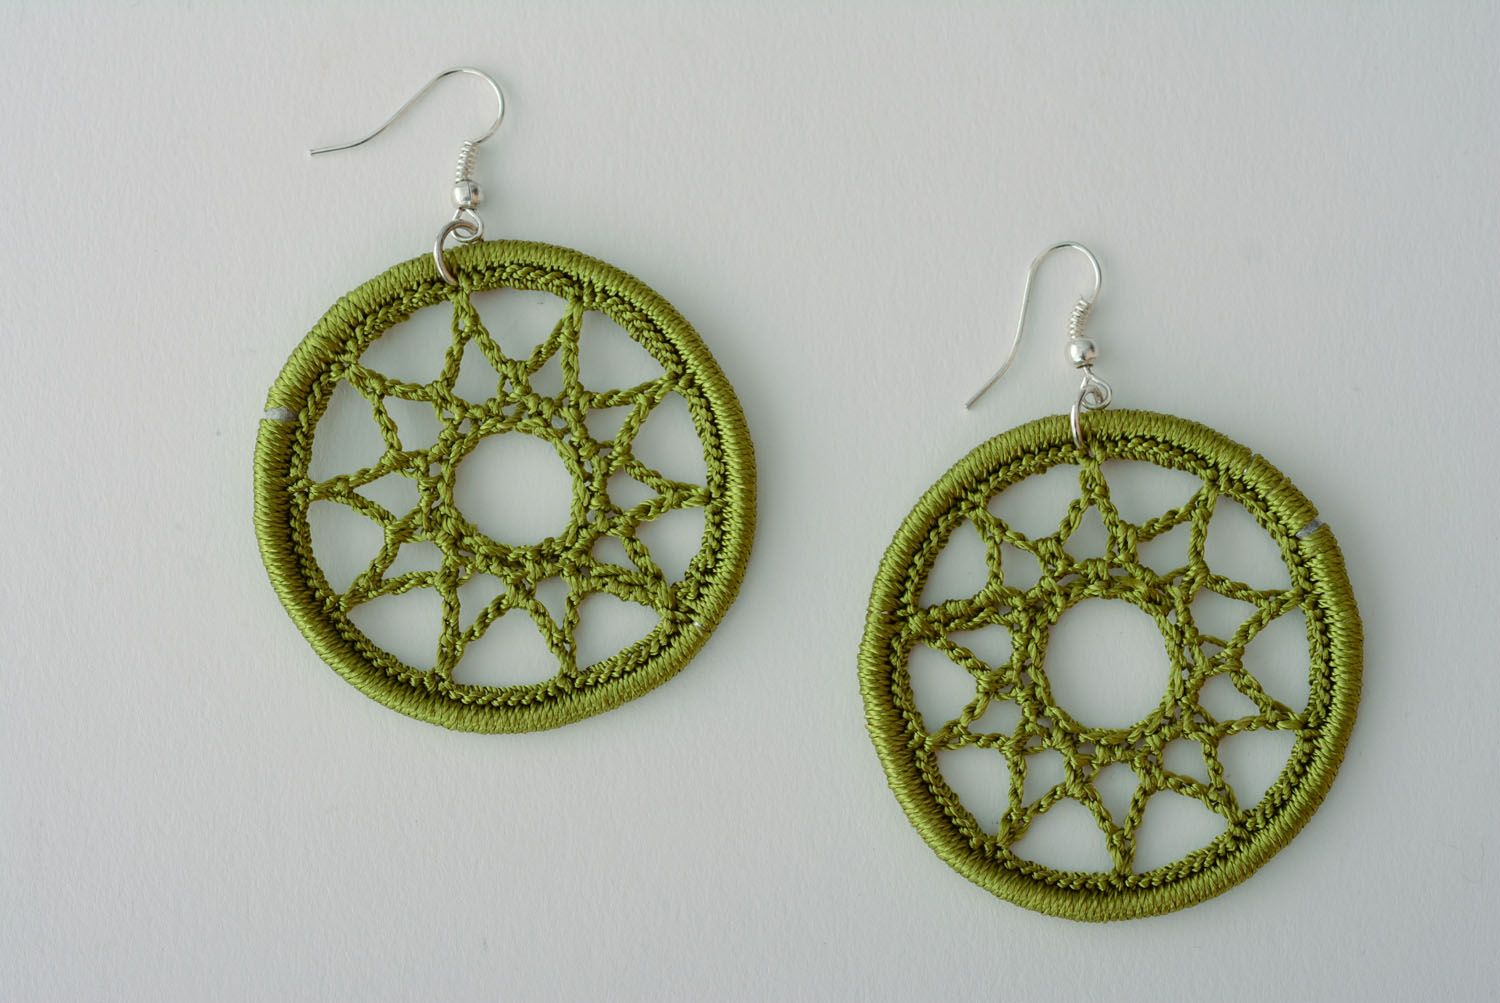 Earrings woven of green threads photo 1